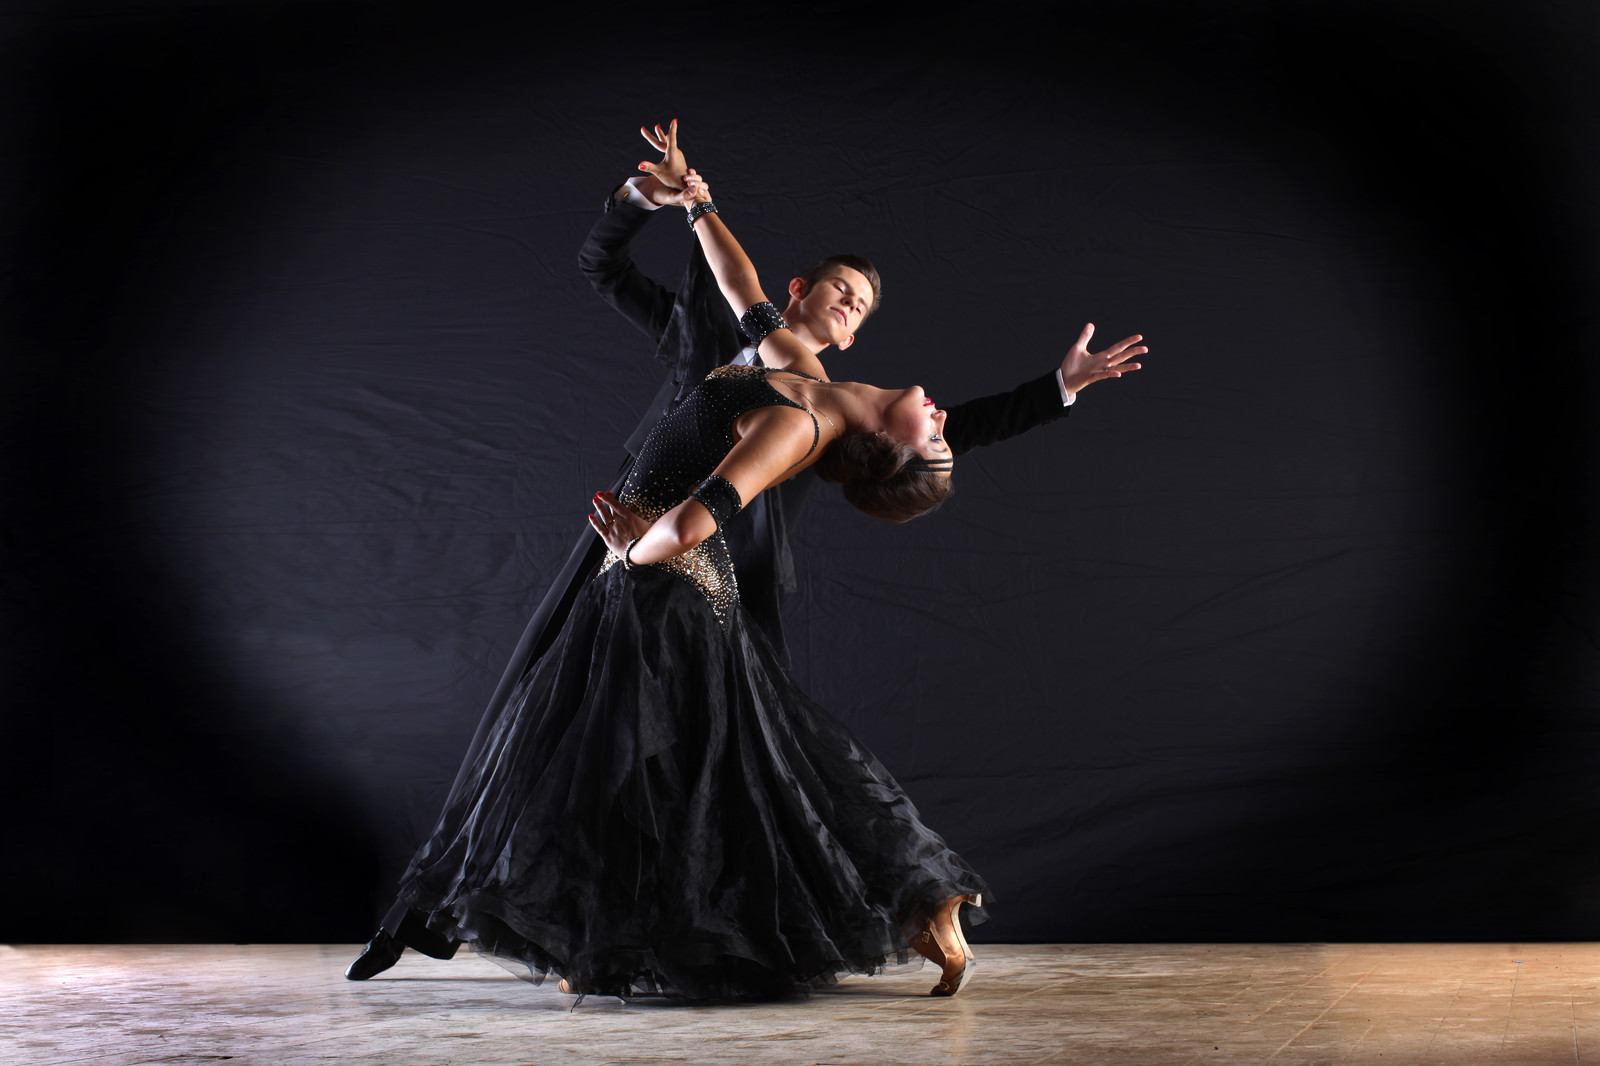 Dance Salsa Wallpapers High Quality | Download Free